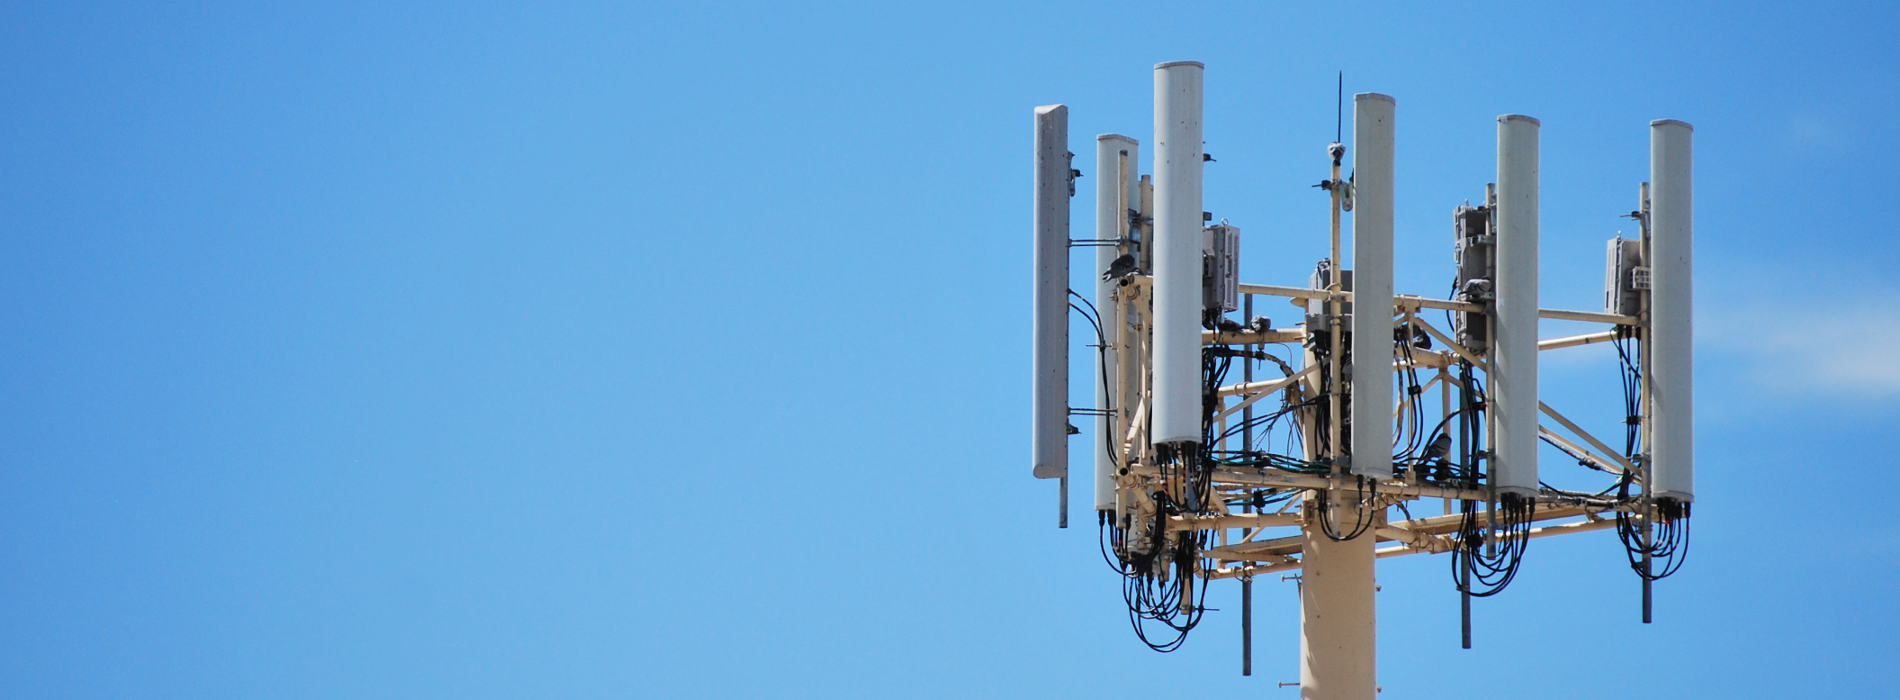 A Monopole Cell Phone Tower